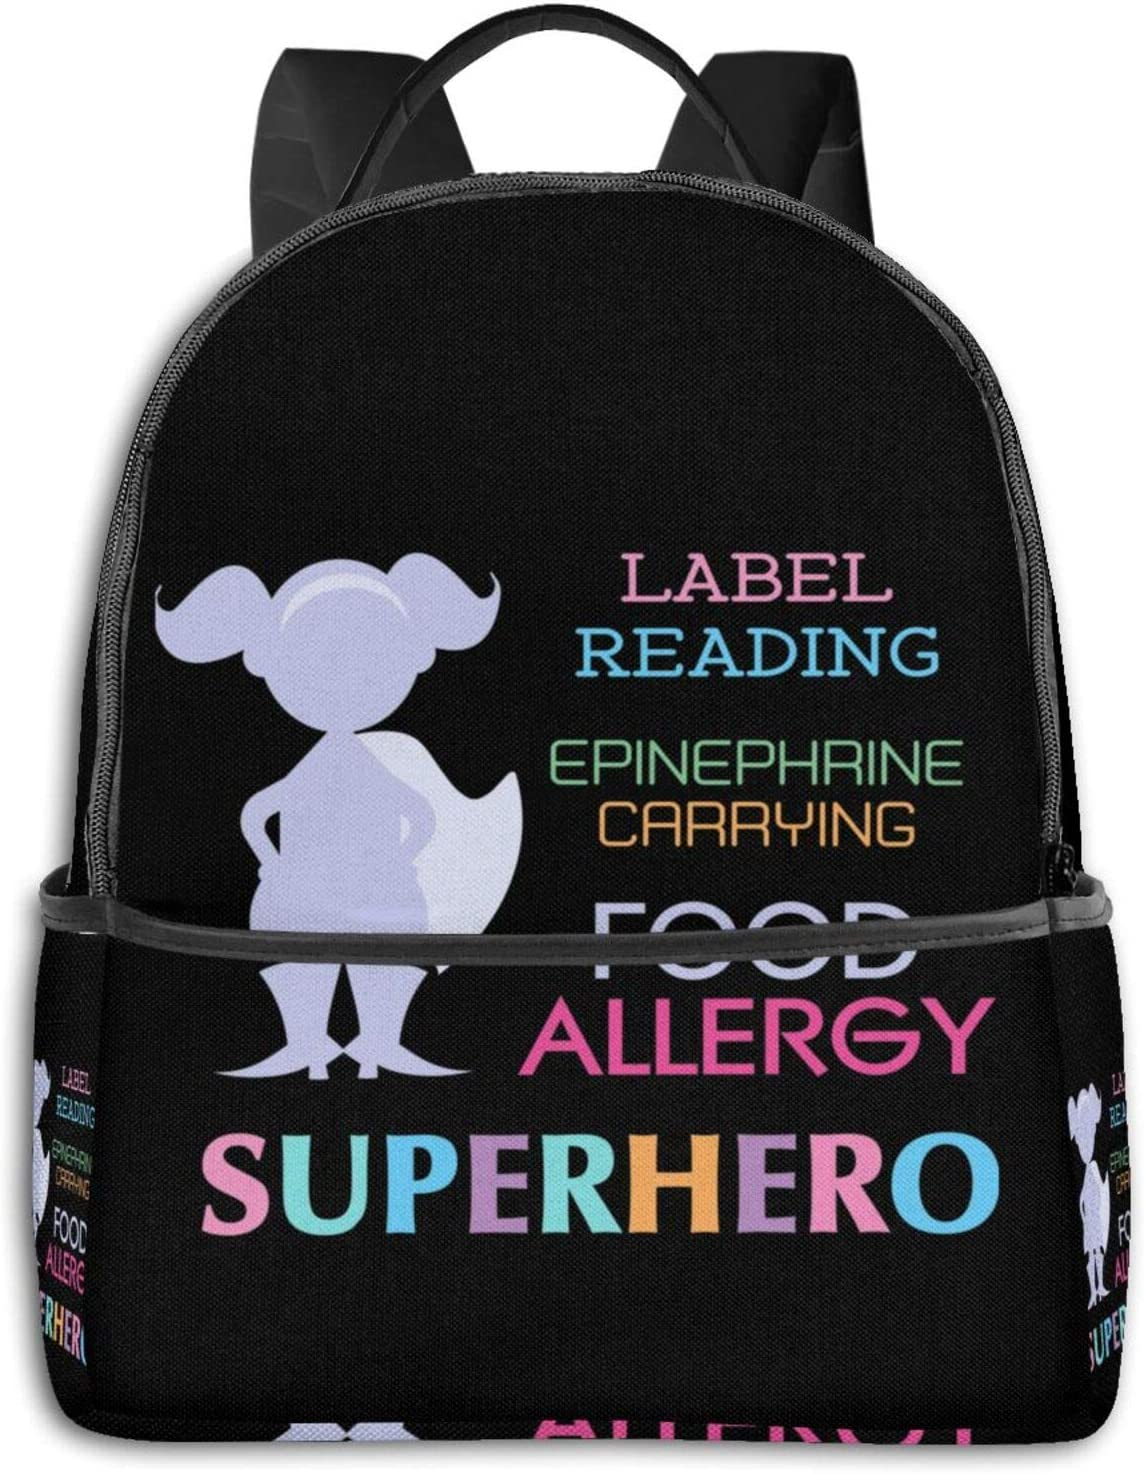 Kids Food Allergy Girls Silhouette Pullover Hoodie Student School Bag School Cycling Leisure Travel Camping Outdoor Backpack